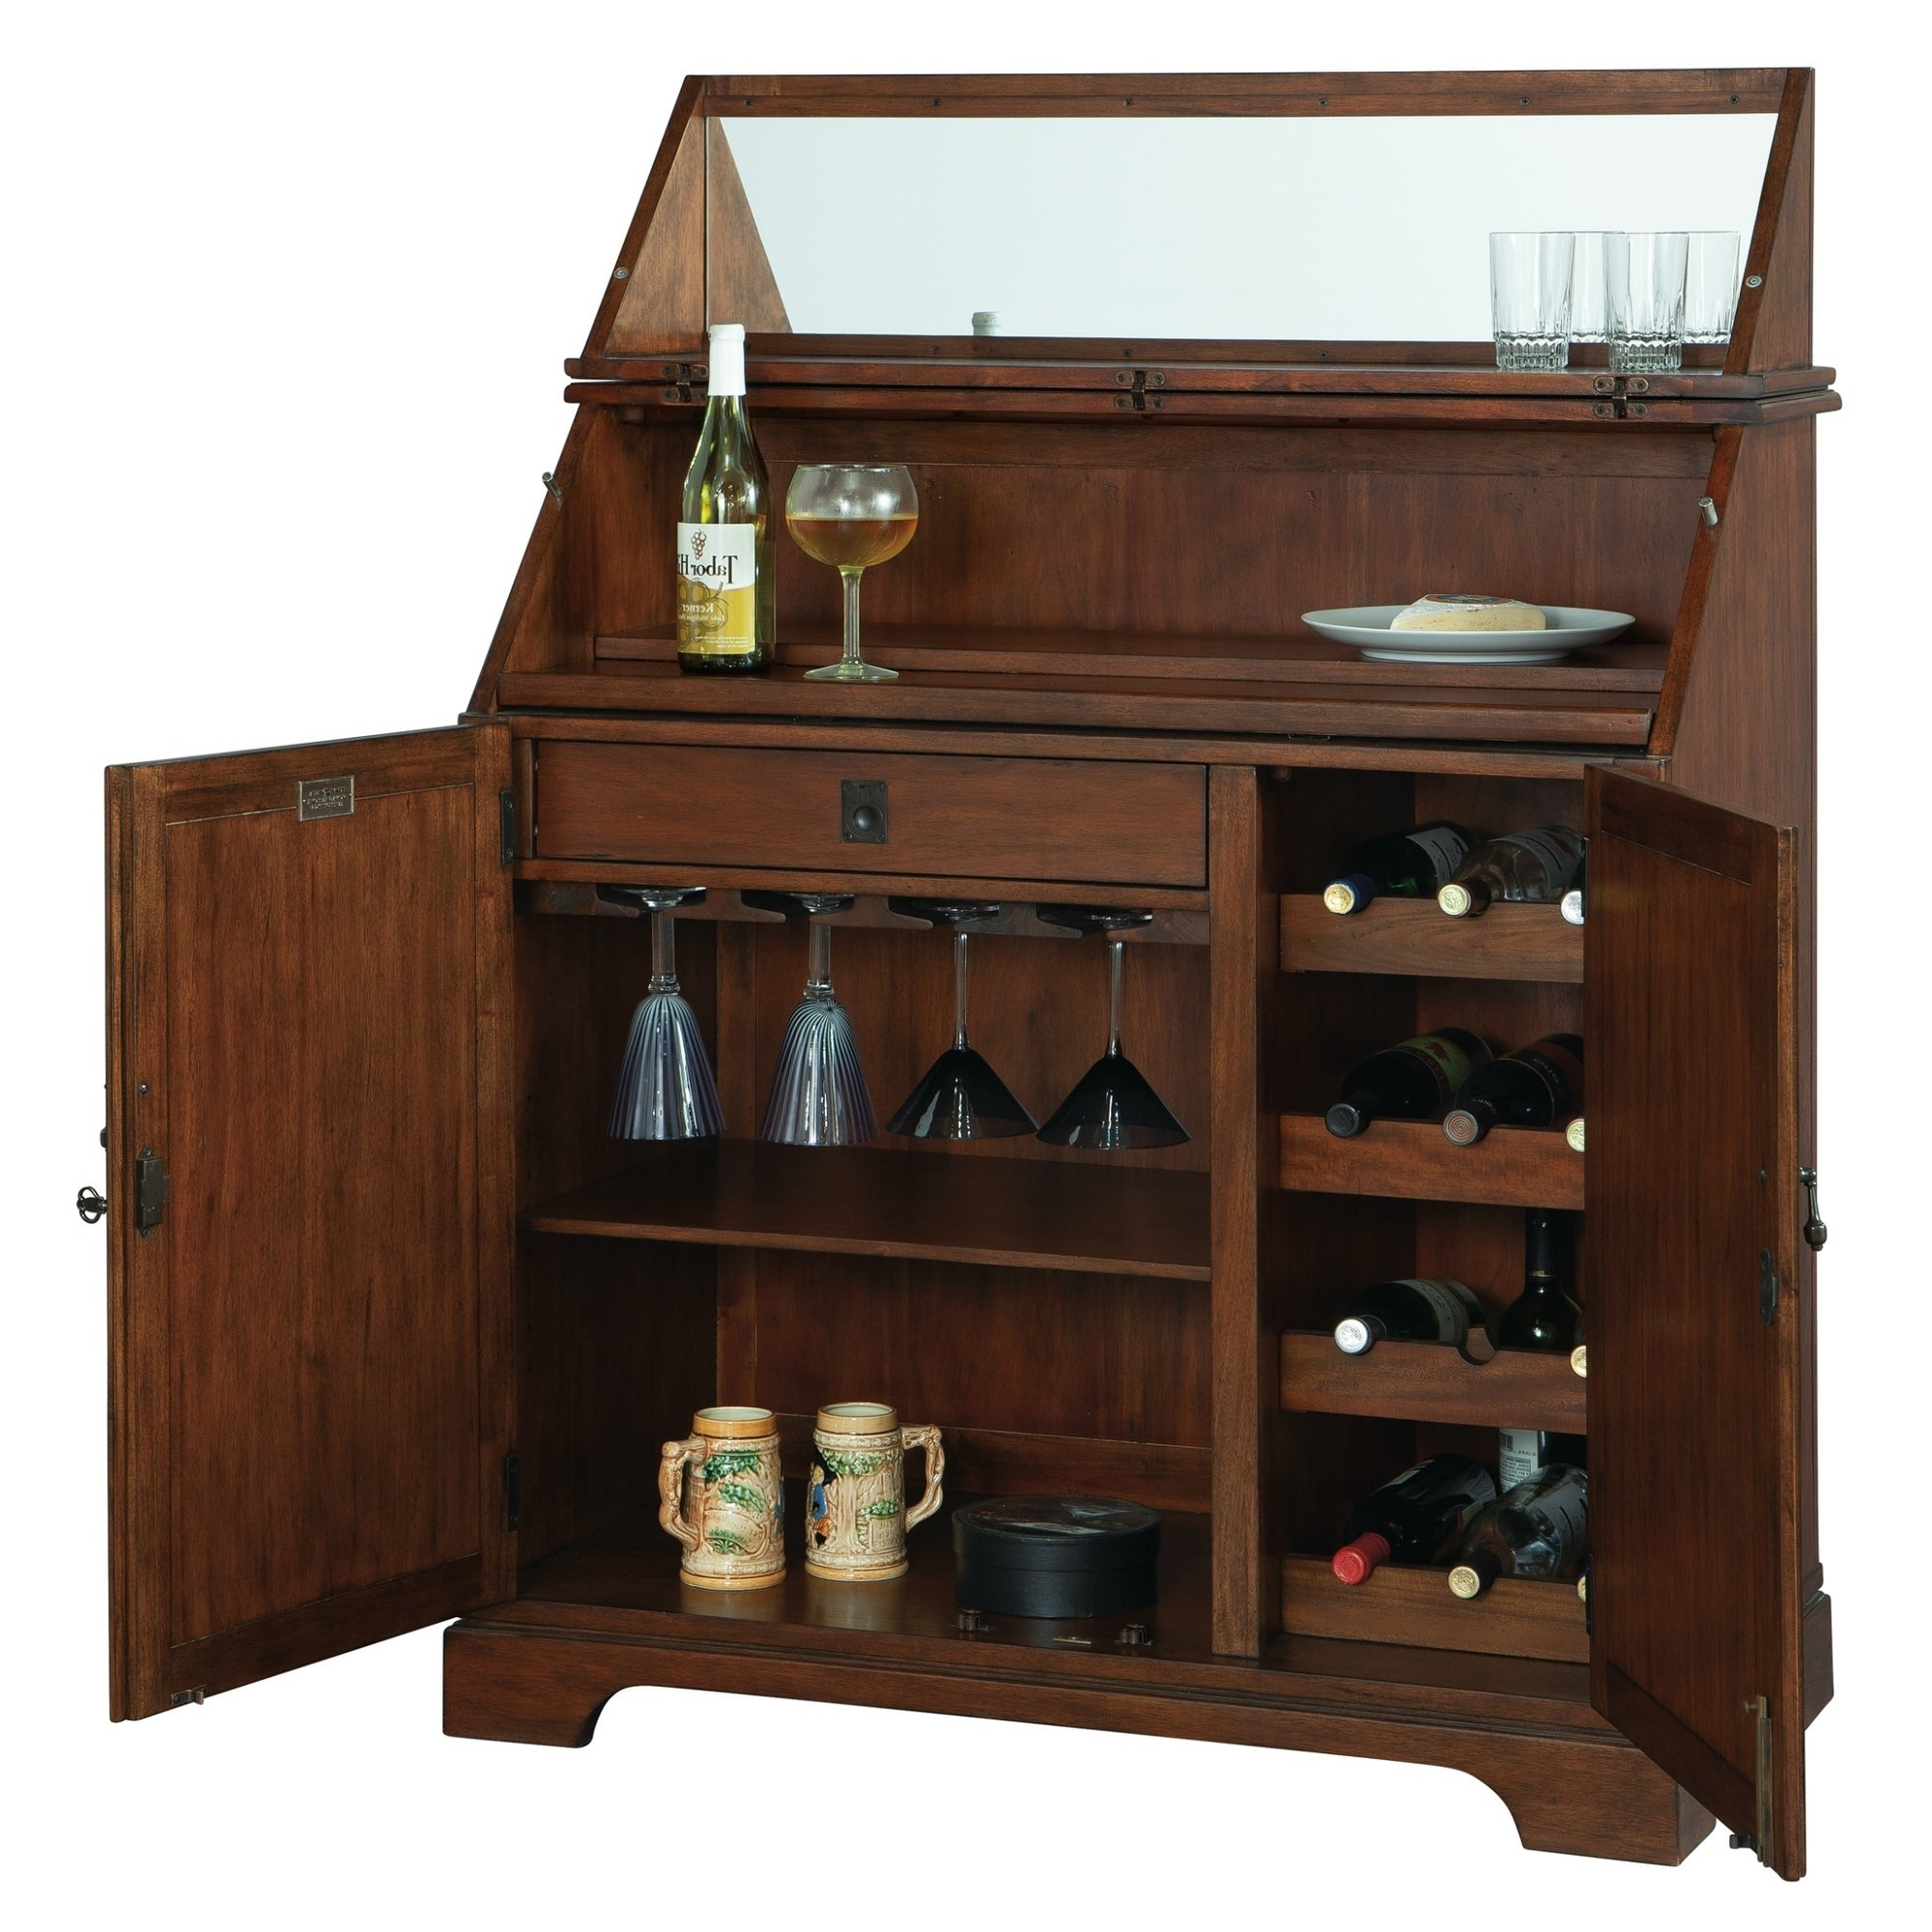 Howard Miller Good Cheer Contemporary, Sleek, Transitional Style, Foyer Liquor Or Wine Cabinet, Sideboard, Or Media Cabinet In Upper Stanton Sideboards (View 19 of 20)